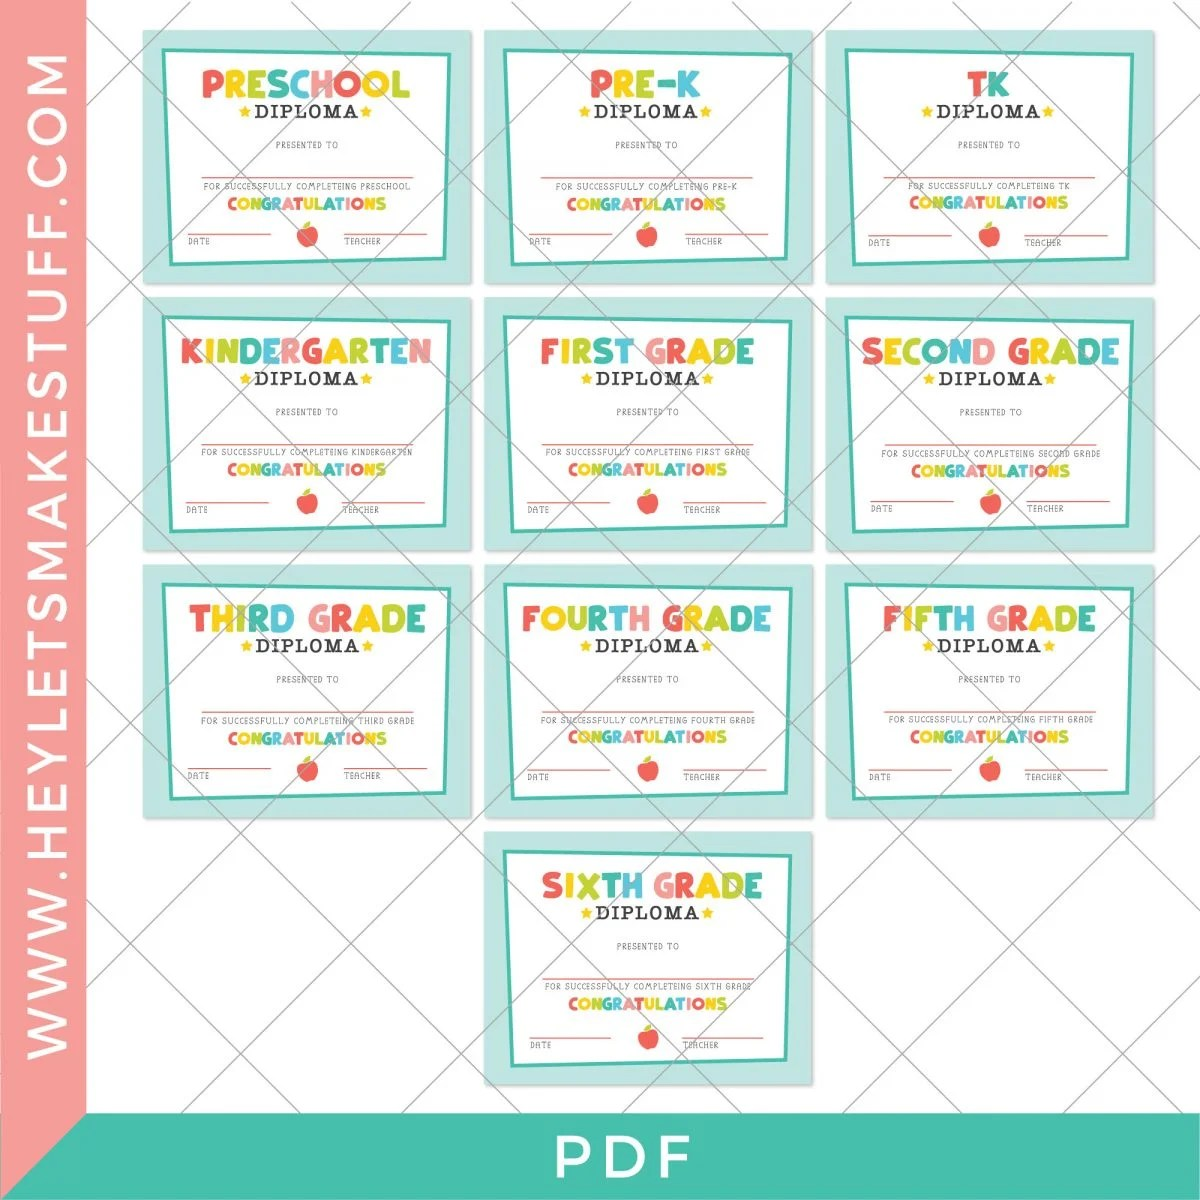 All graduation diplomas included in this free download